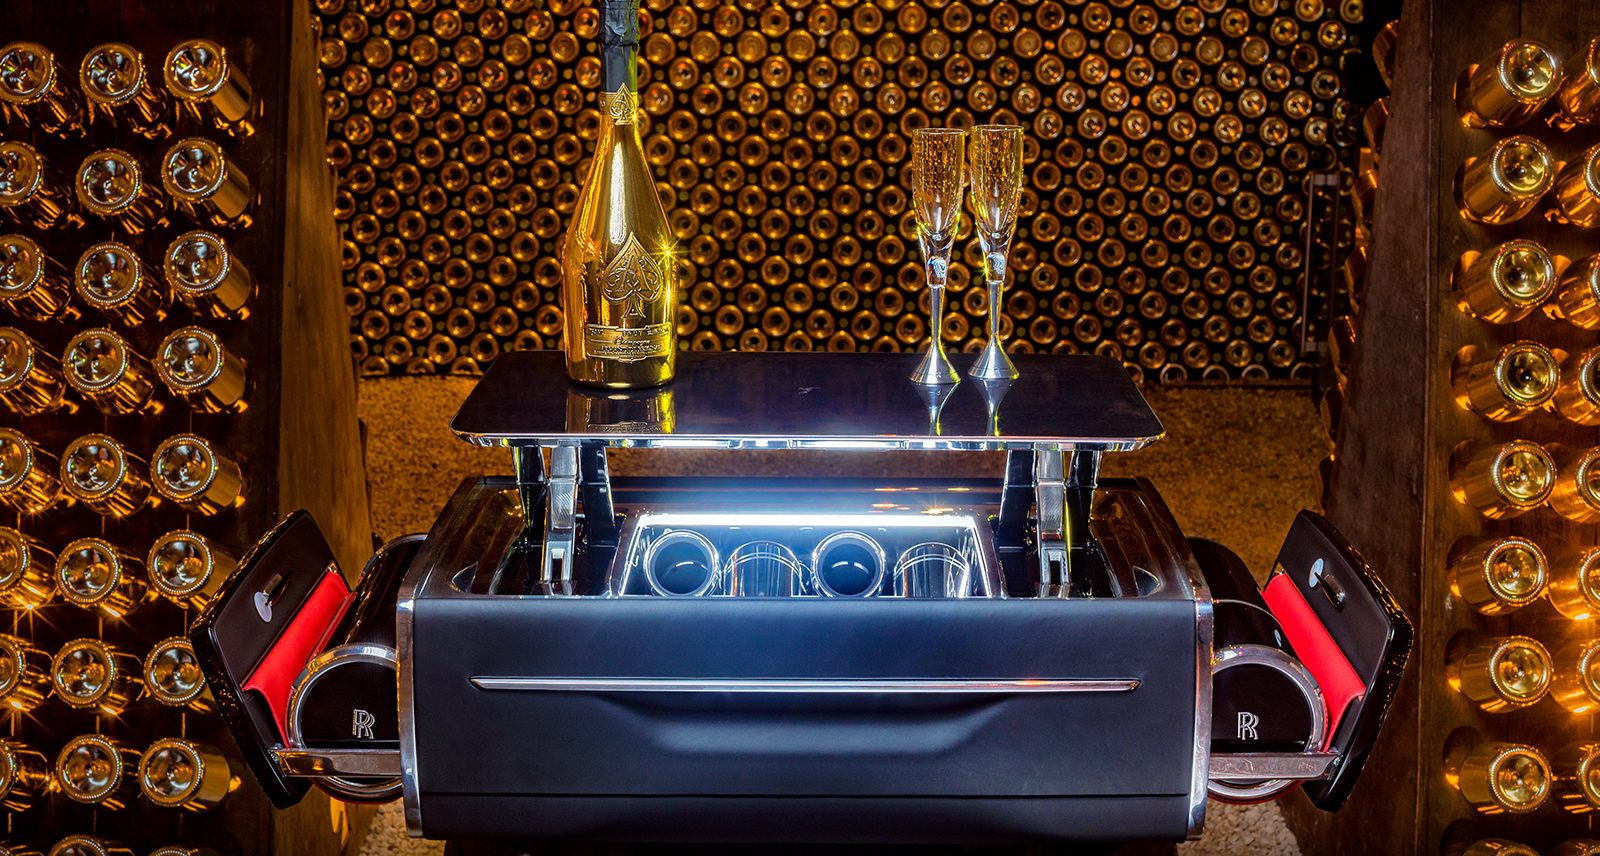 This Rolls-Royce Champagne Cooler Is, Well, the Rolls-Royce of Champagne Coolers